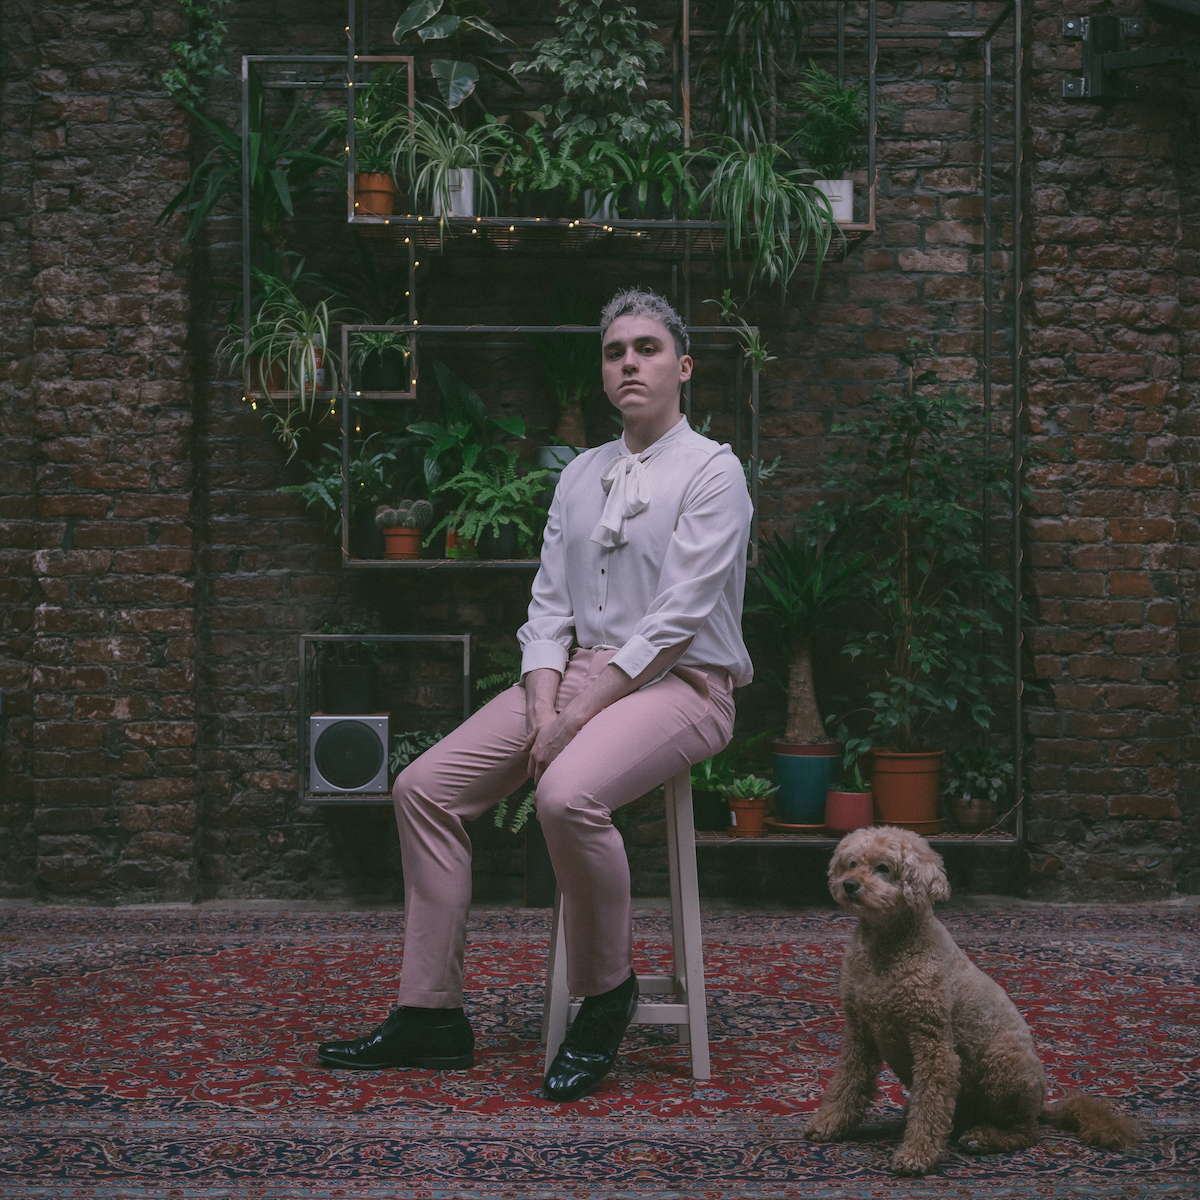 Patrick sits on a white stool, wearing pink trousers and white shirt. A dog sits along side him to his left. Plants sit on shelves on a wall behind them.